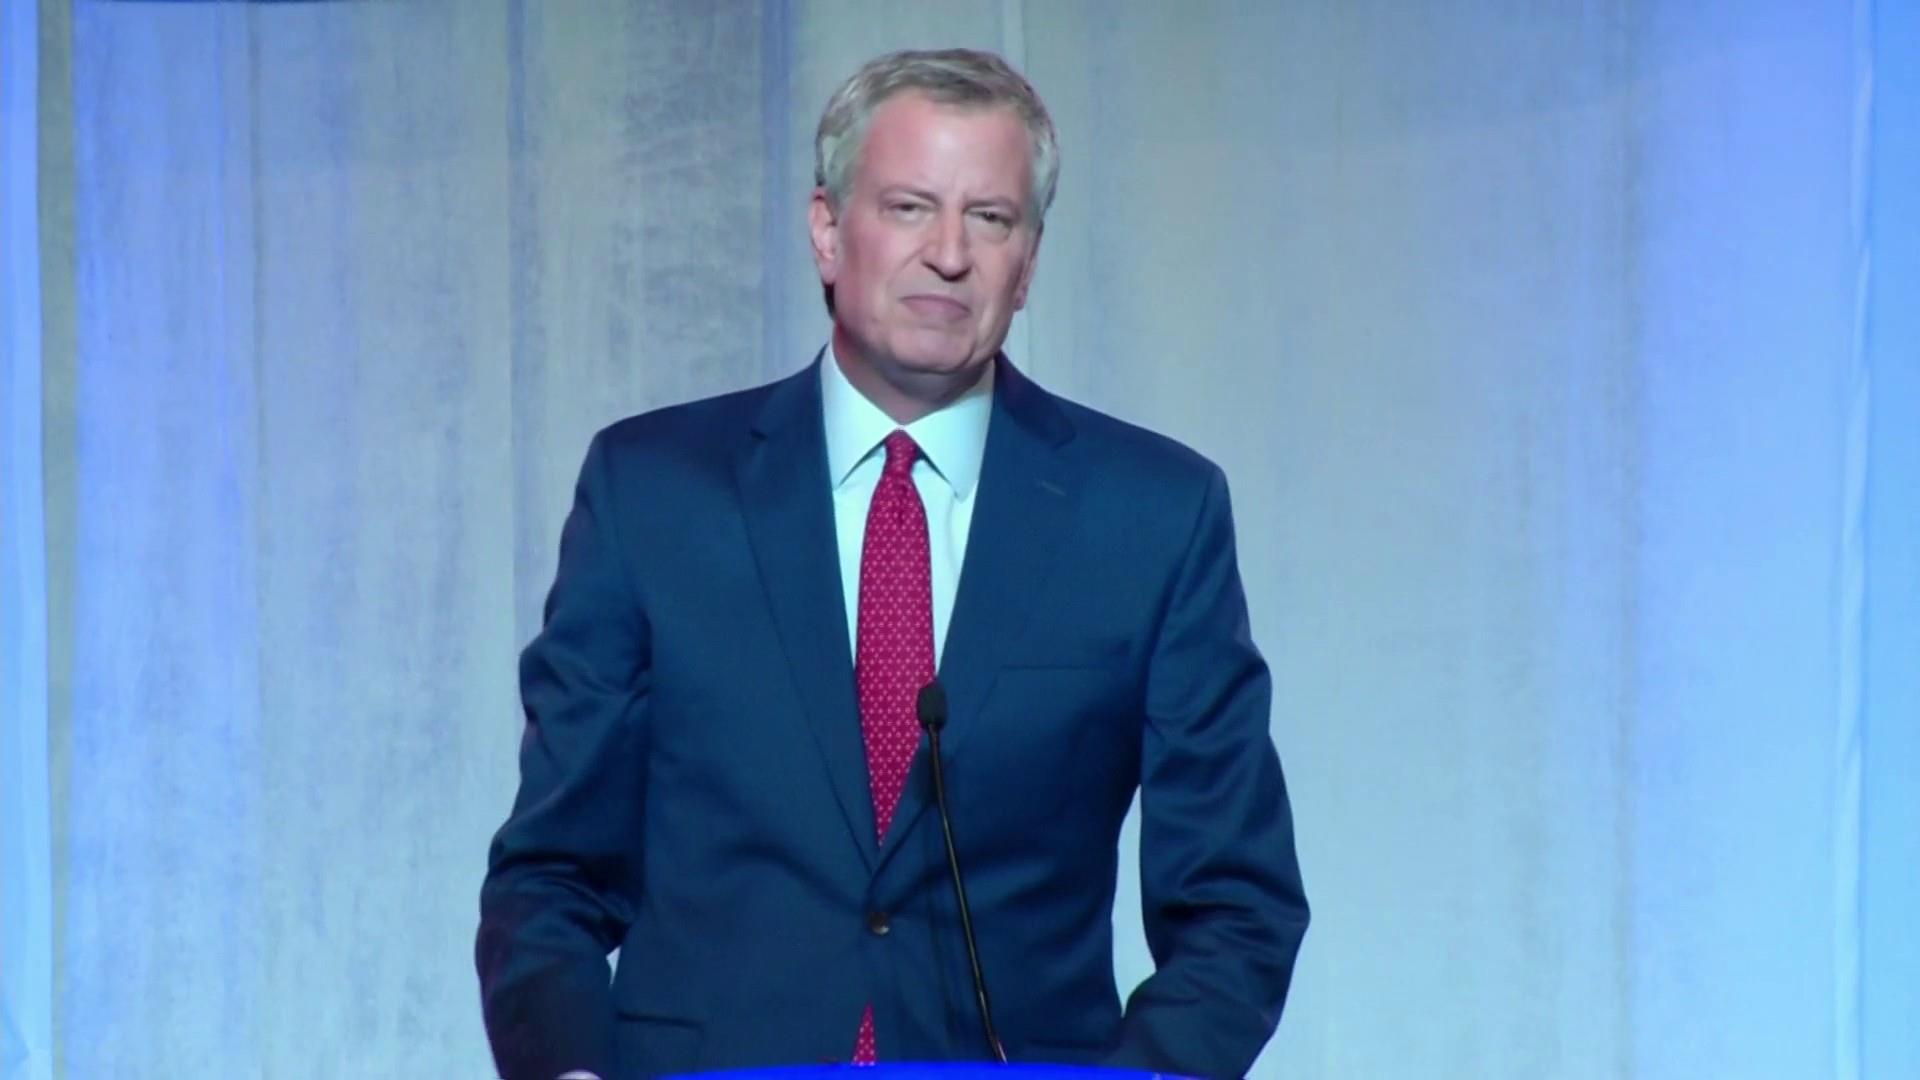 2020 candidate Bill de Blasio: 'Working people deserve paid sick leave'